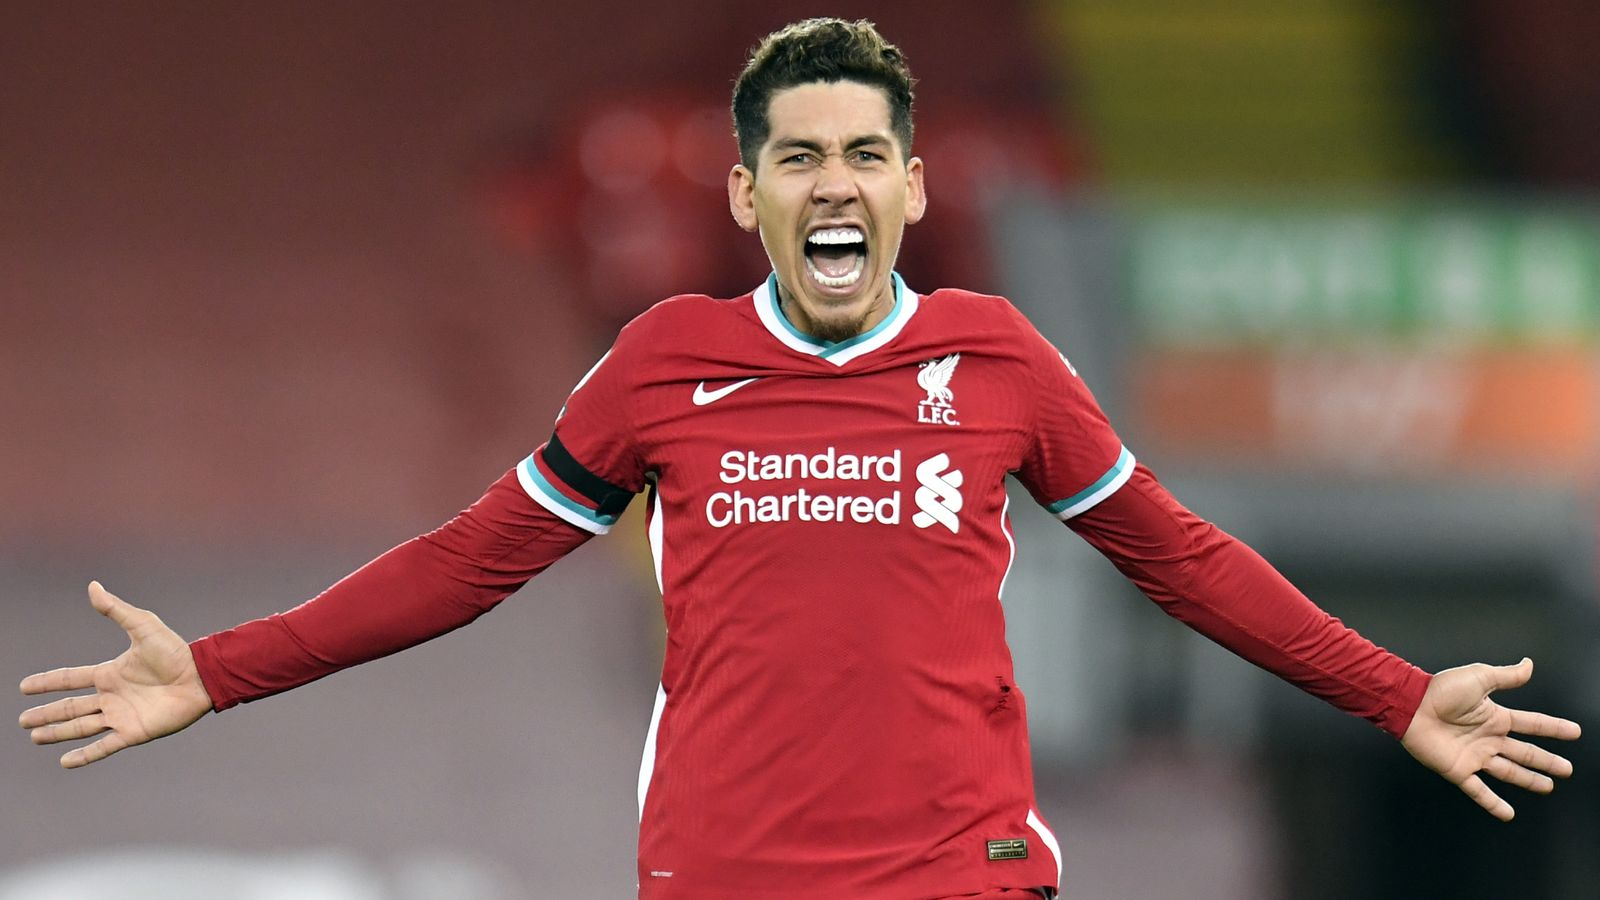 Roberto Firmino scored the stoppage time winner that helped the Reds leapfrog Tottenham